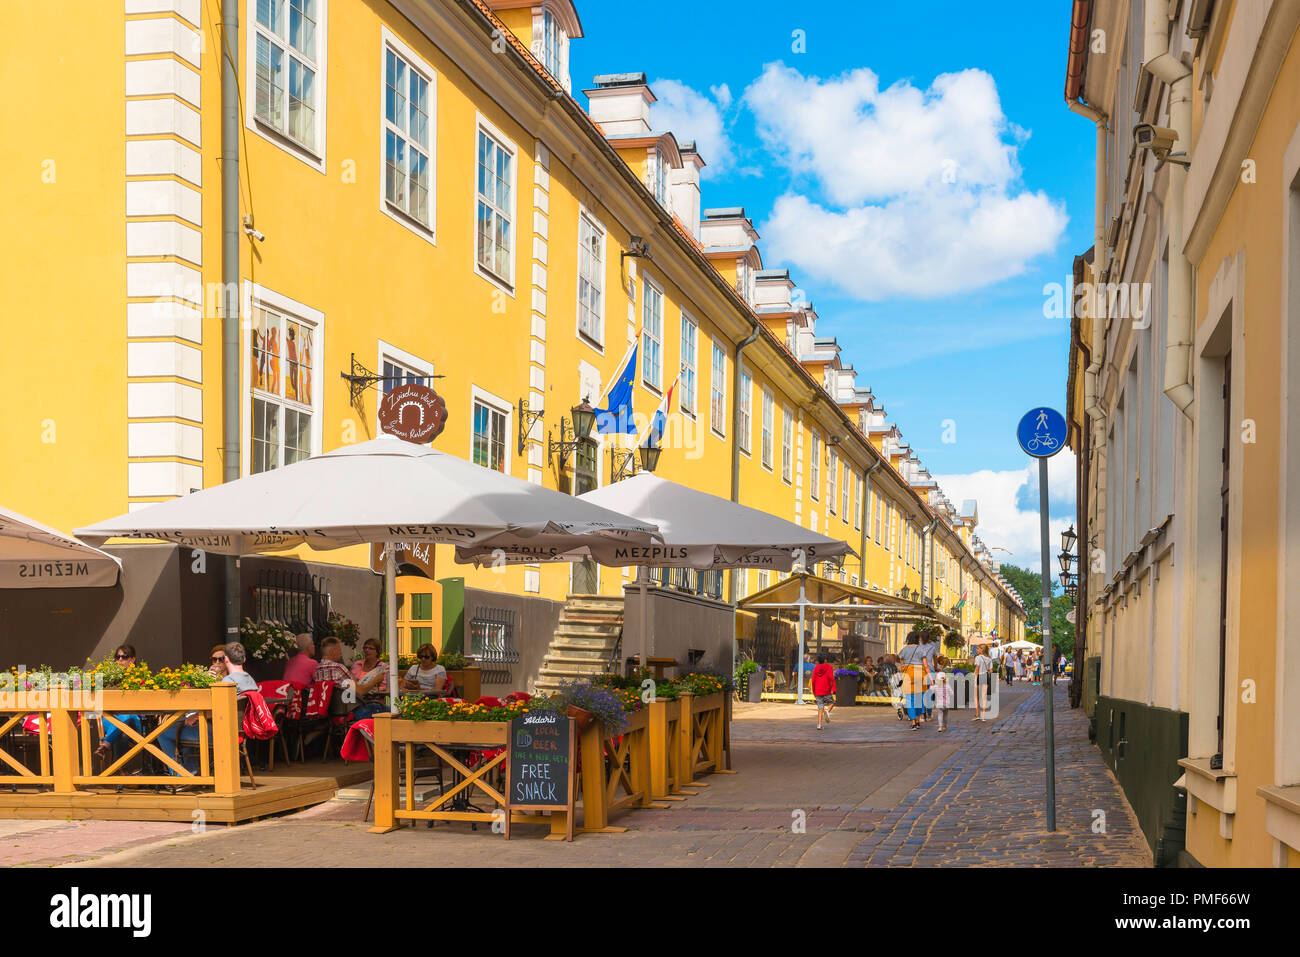 Riga Old Town, view of a cafe restaurant beside the colorful Jacobs Barracks building in Torna Iela in the historic Old Town quarter of Riga, Latvia. - Stock Image